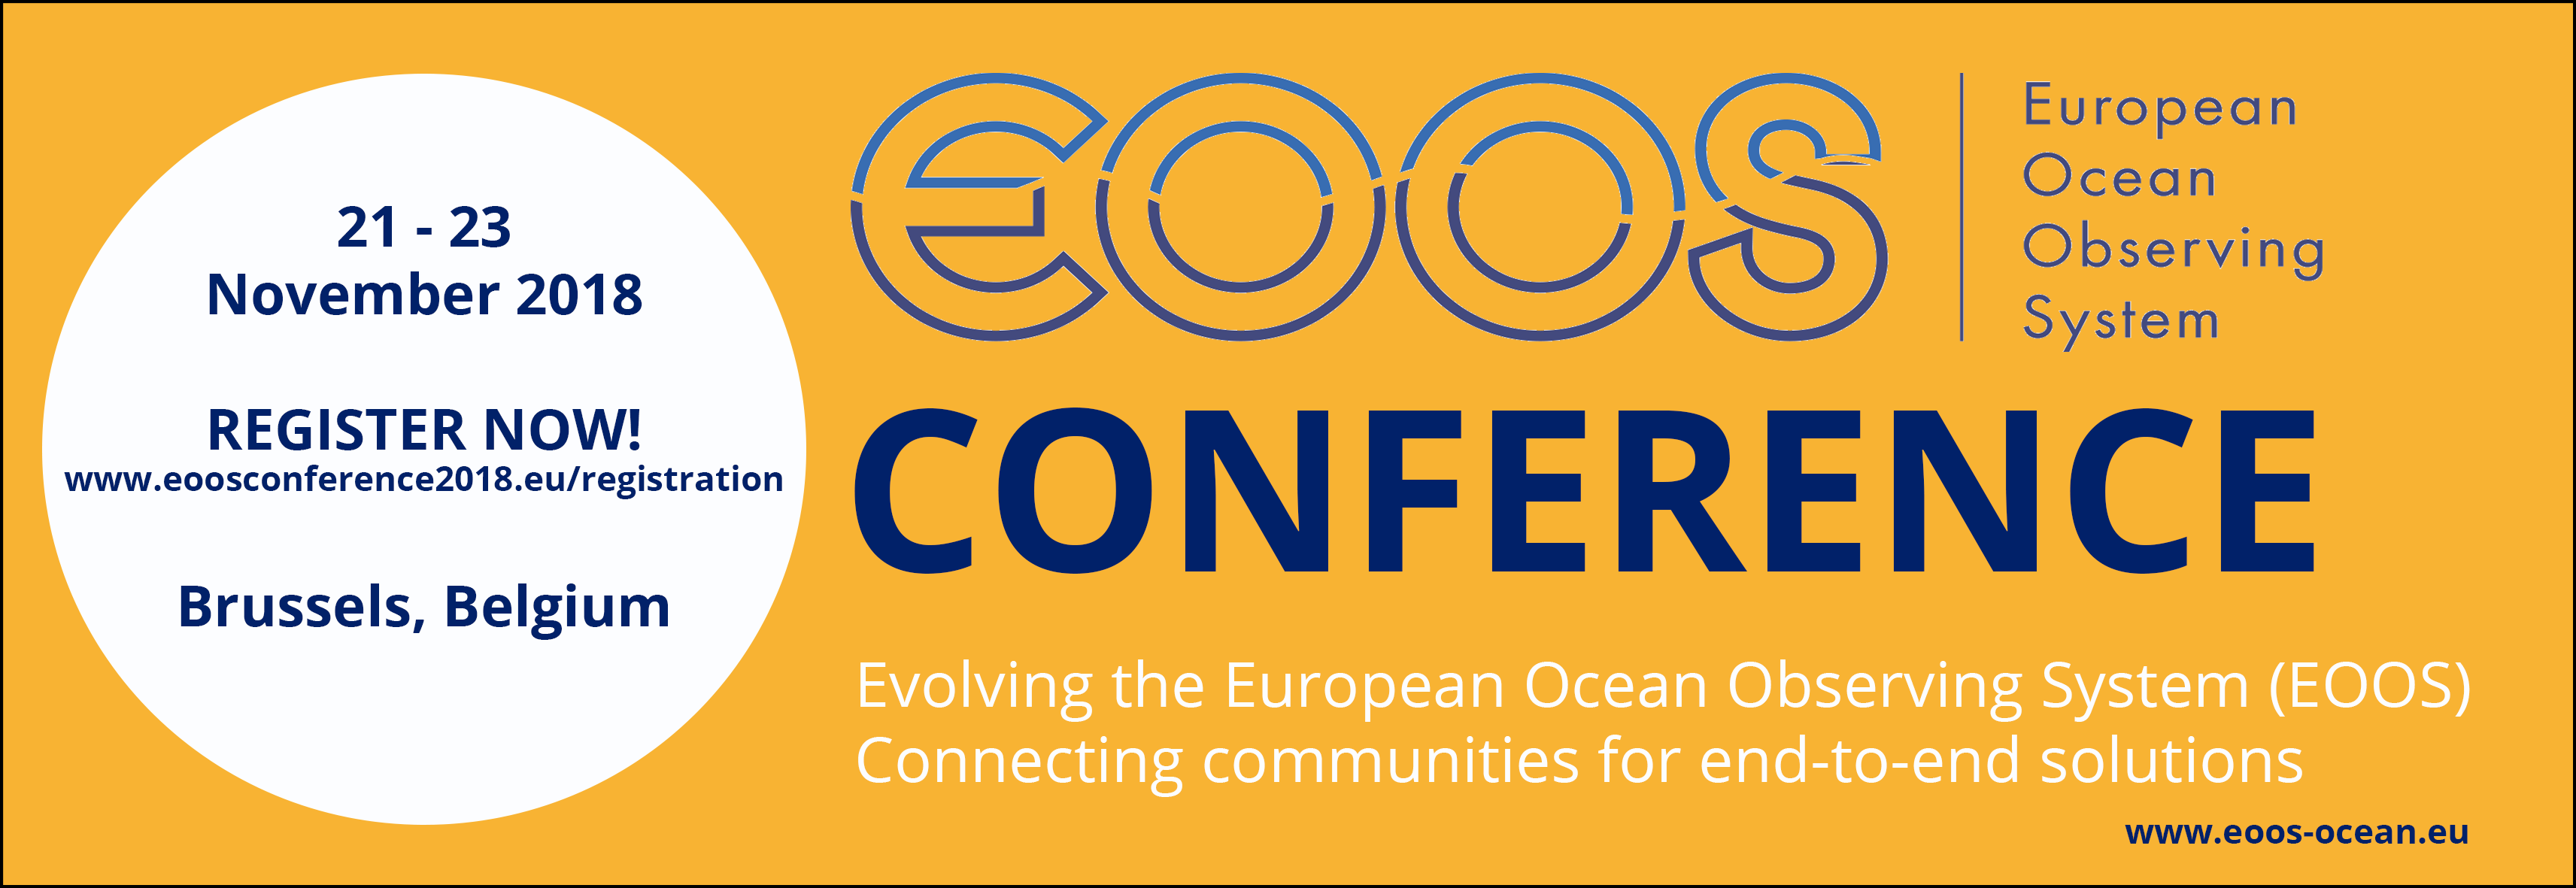 EOOS Conference Banner